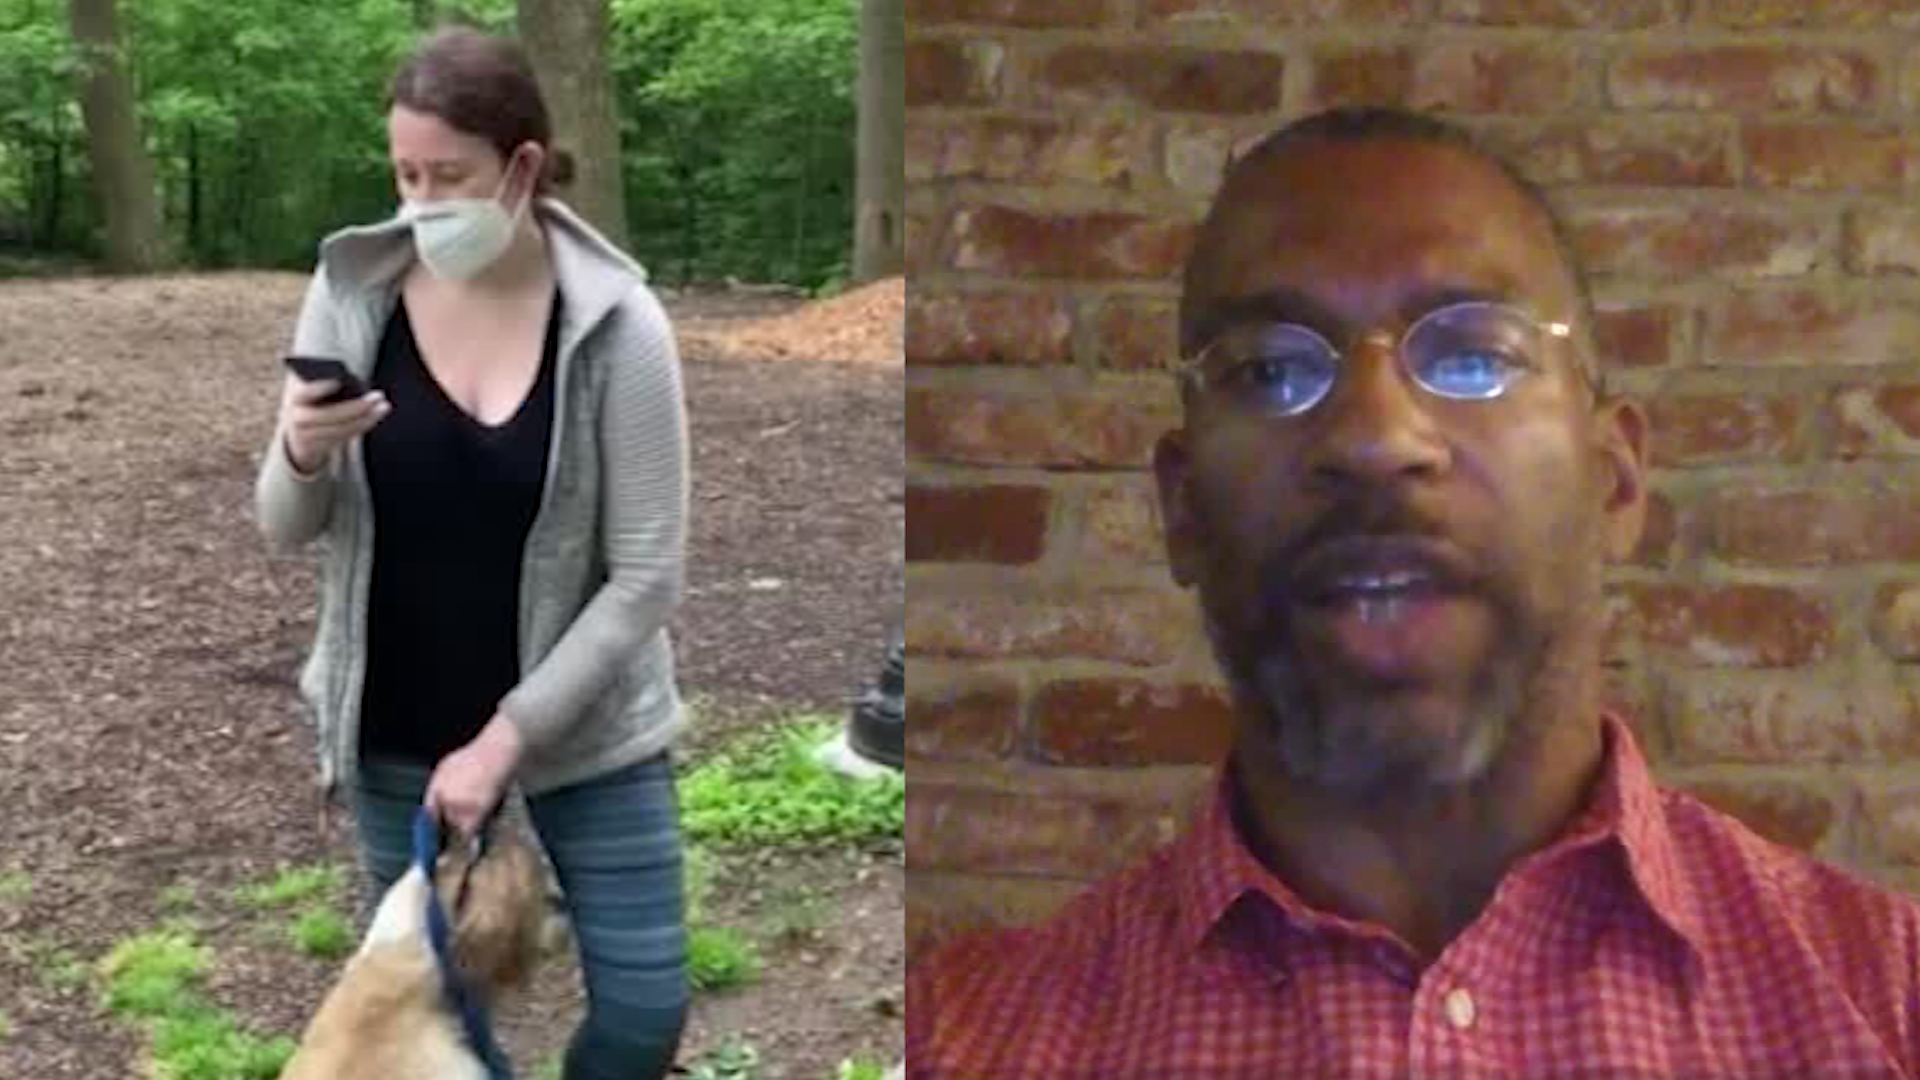 Black birdwatcher Christian Cooper says prosecuting Amy Cooper 'lets white people off the hook'